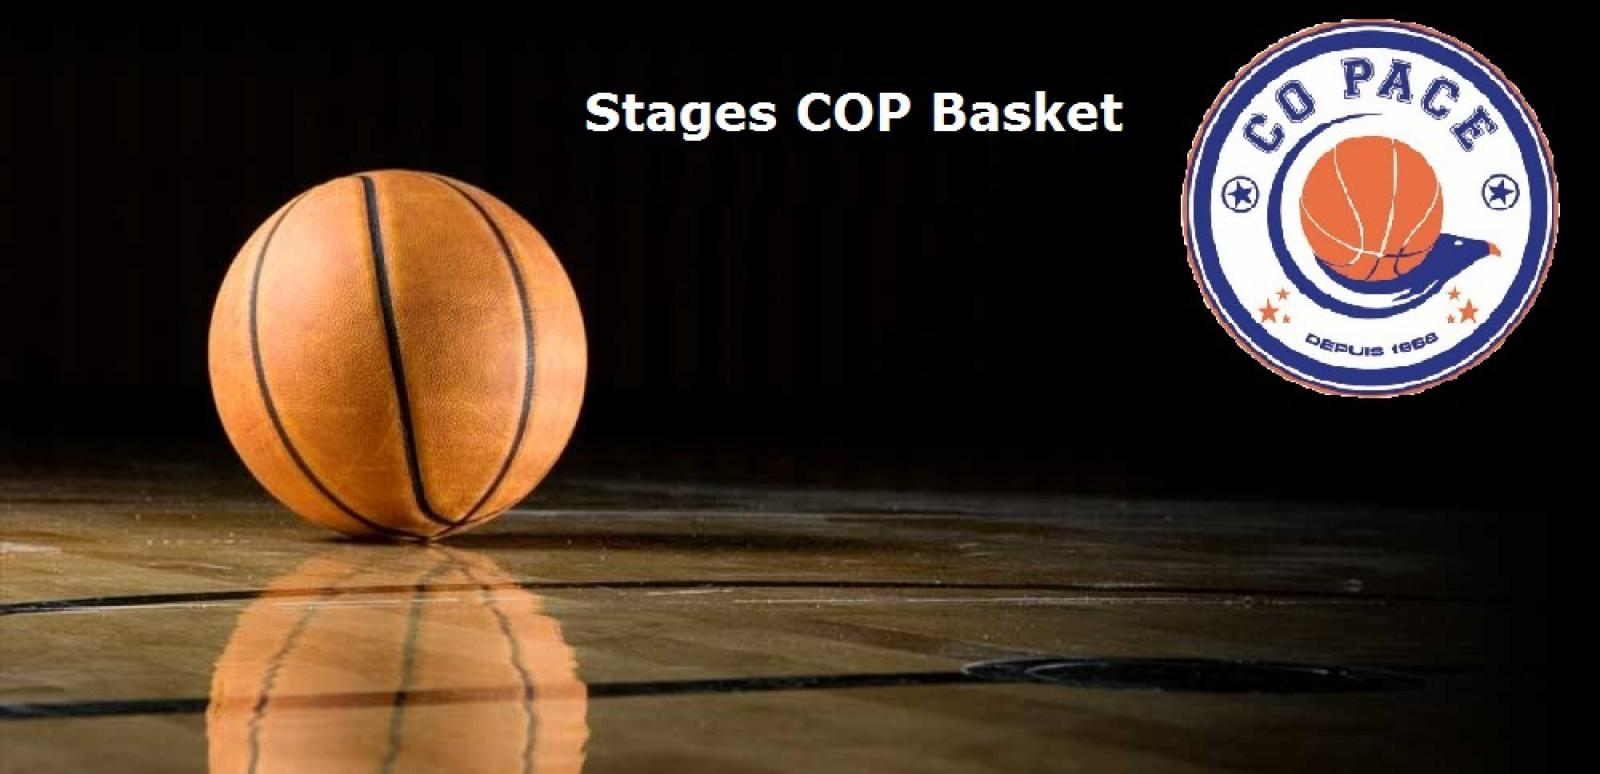 Stages COPACE